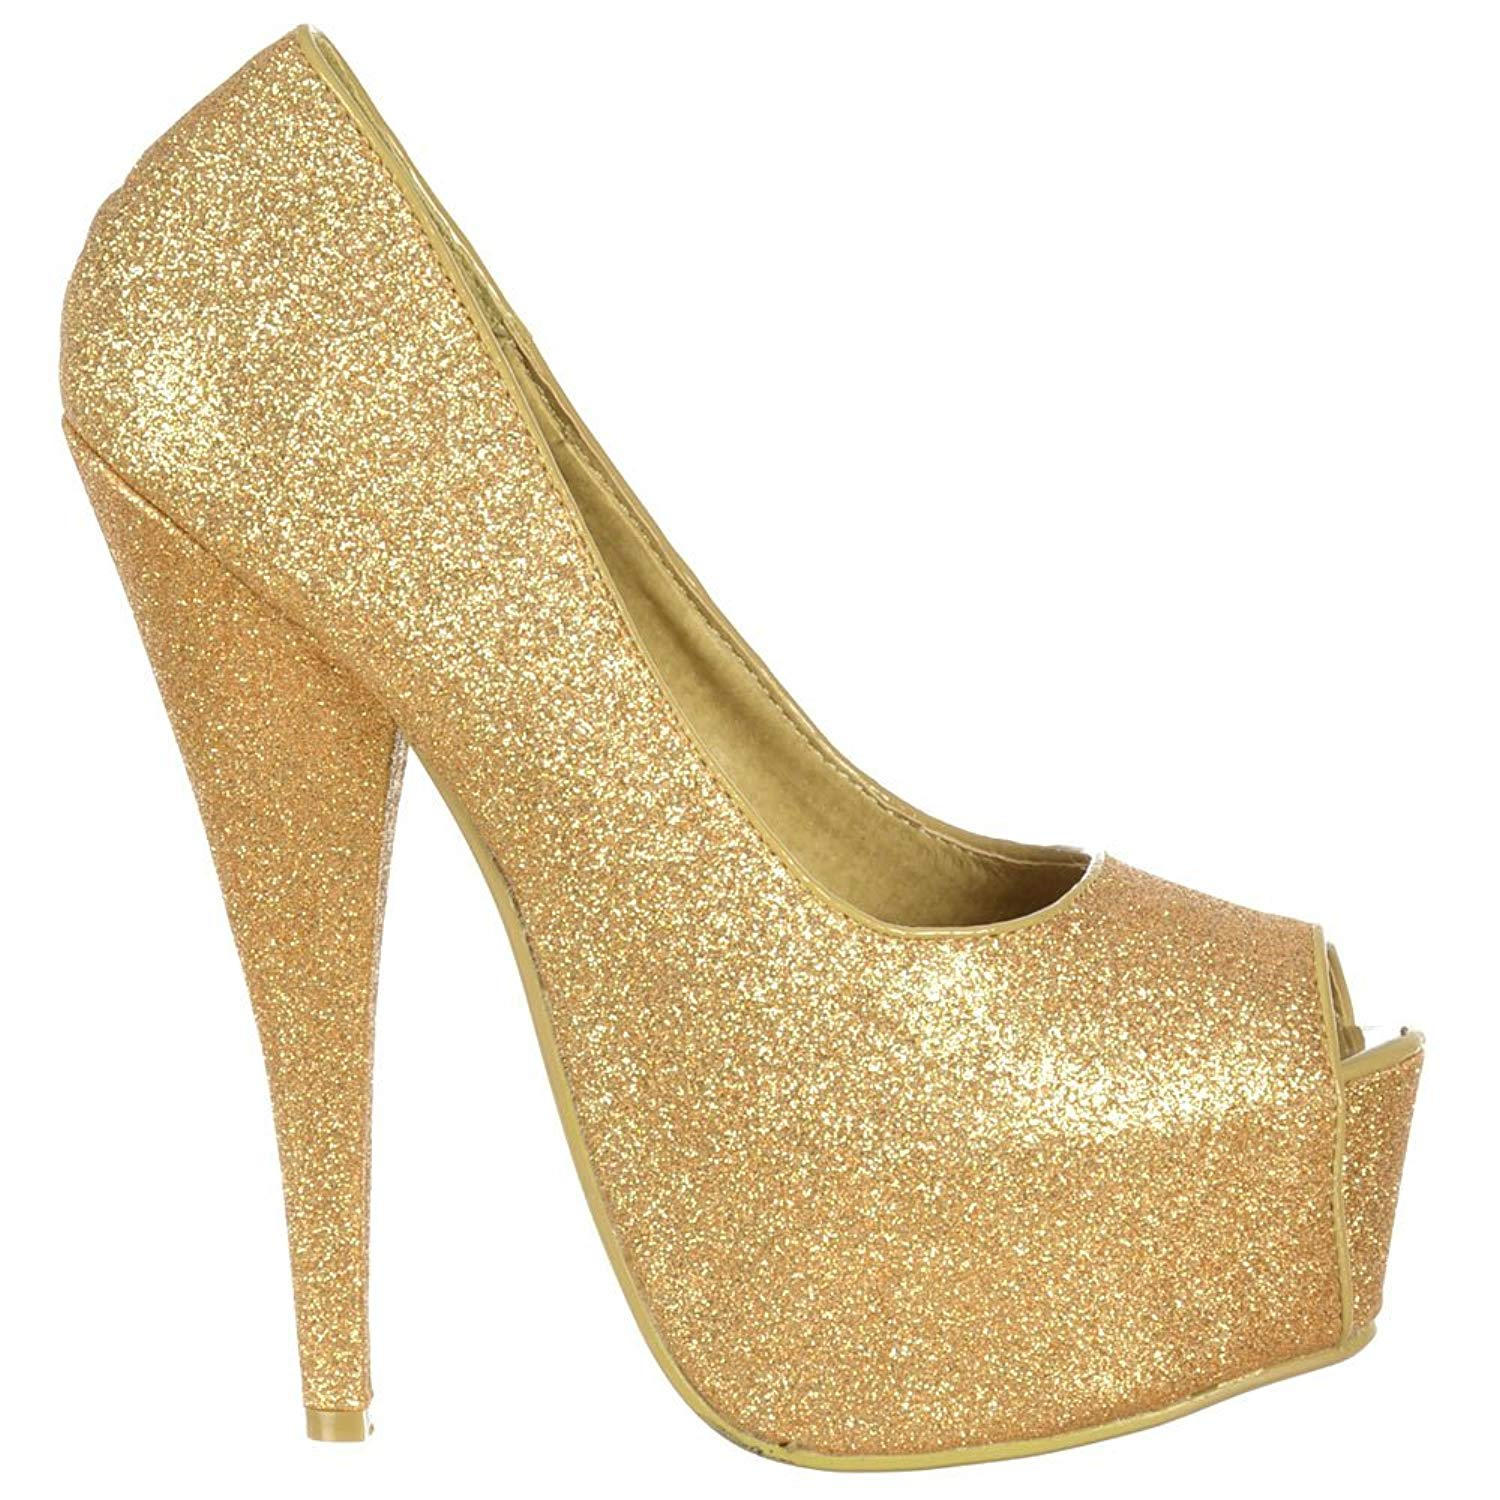 Onlineshoe Women's Sparkly Peep Toe Stiletto Concealed Platform High Heel Pump